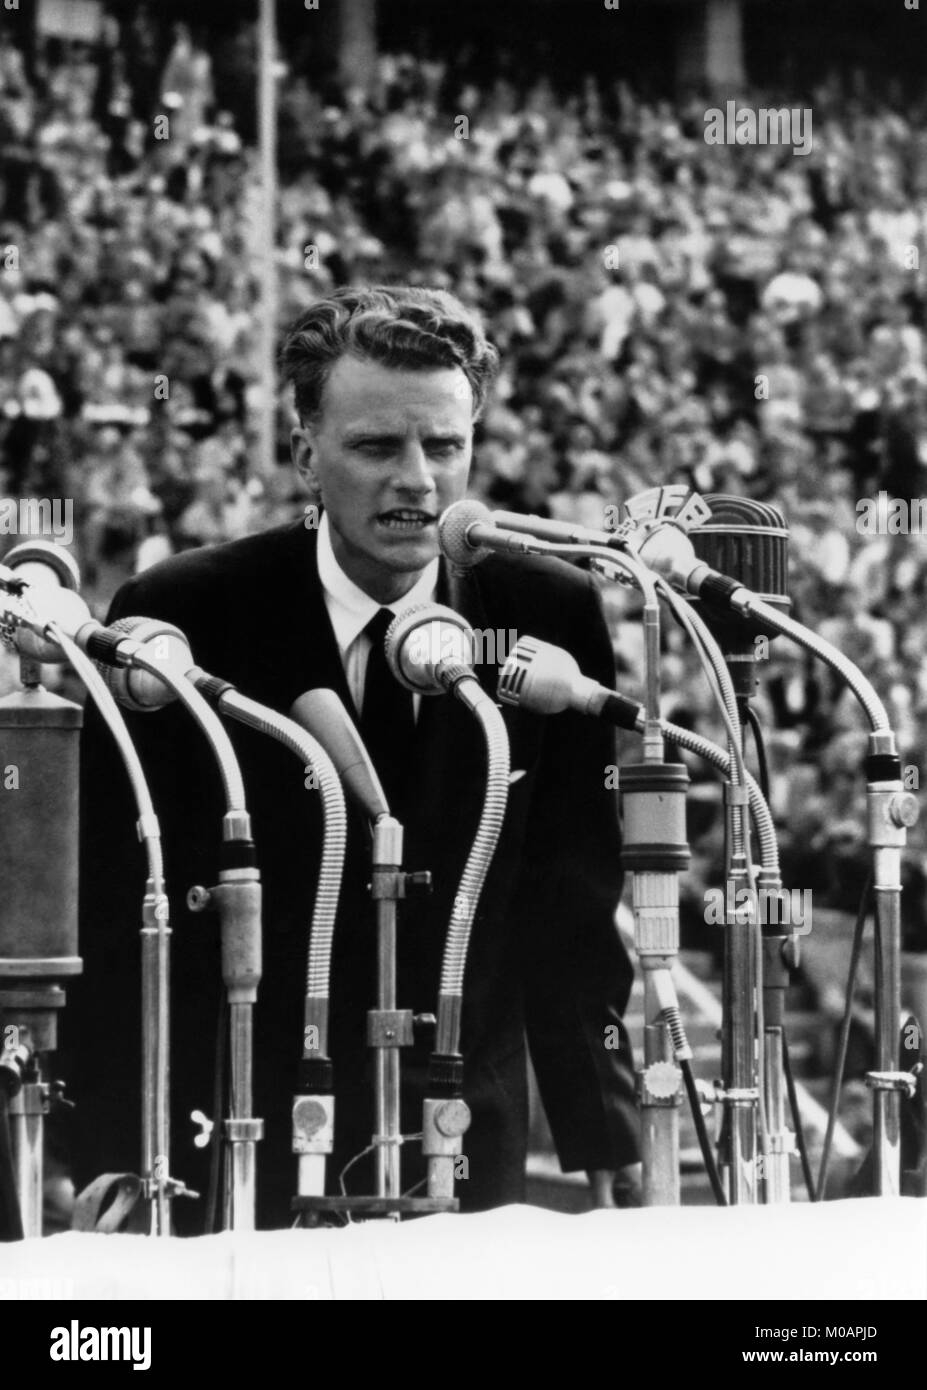 American evangelist Billy Graham addressing a crowd of over 100,000 at the Olympic Stadium in Berlin, Germany in - Stock Image